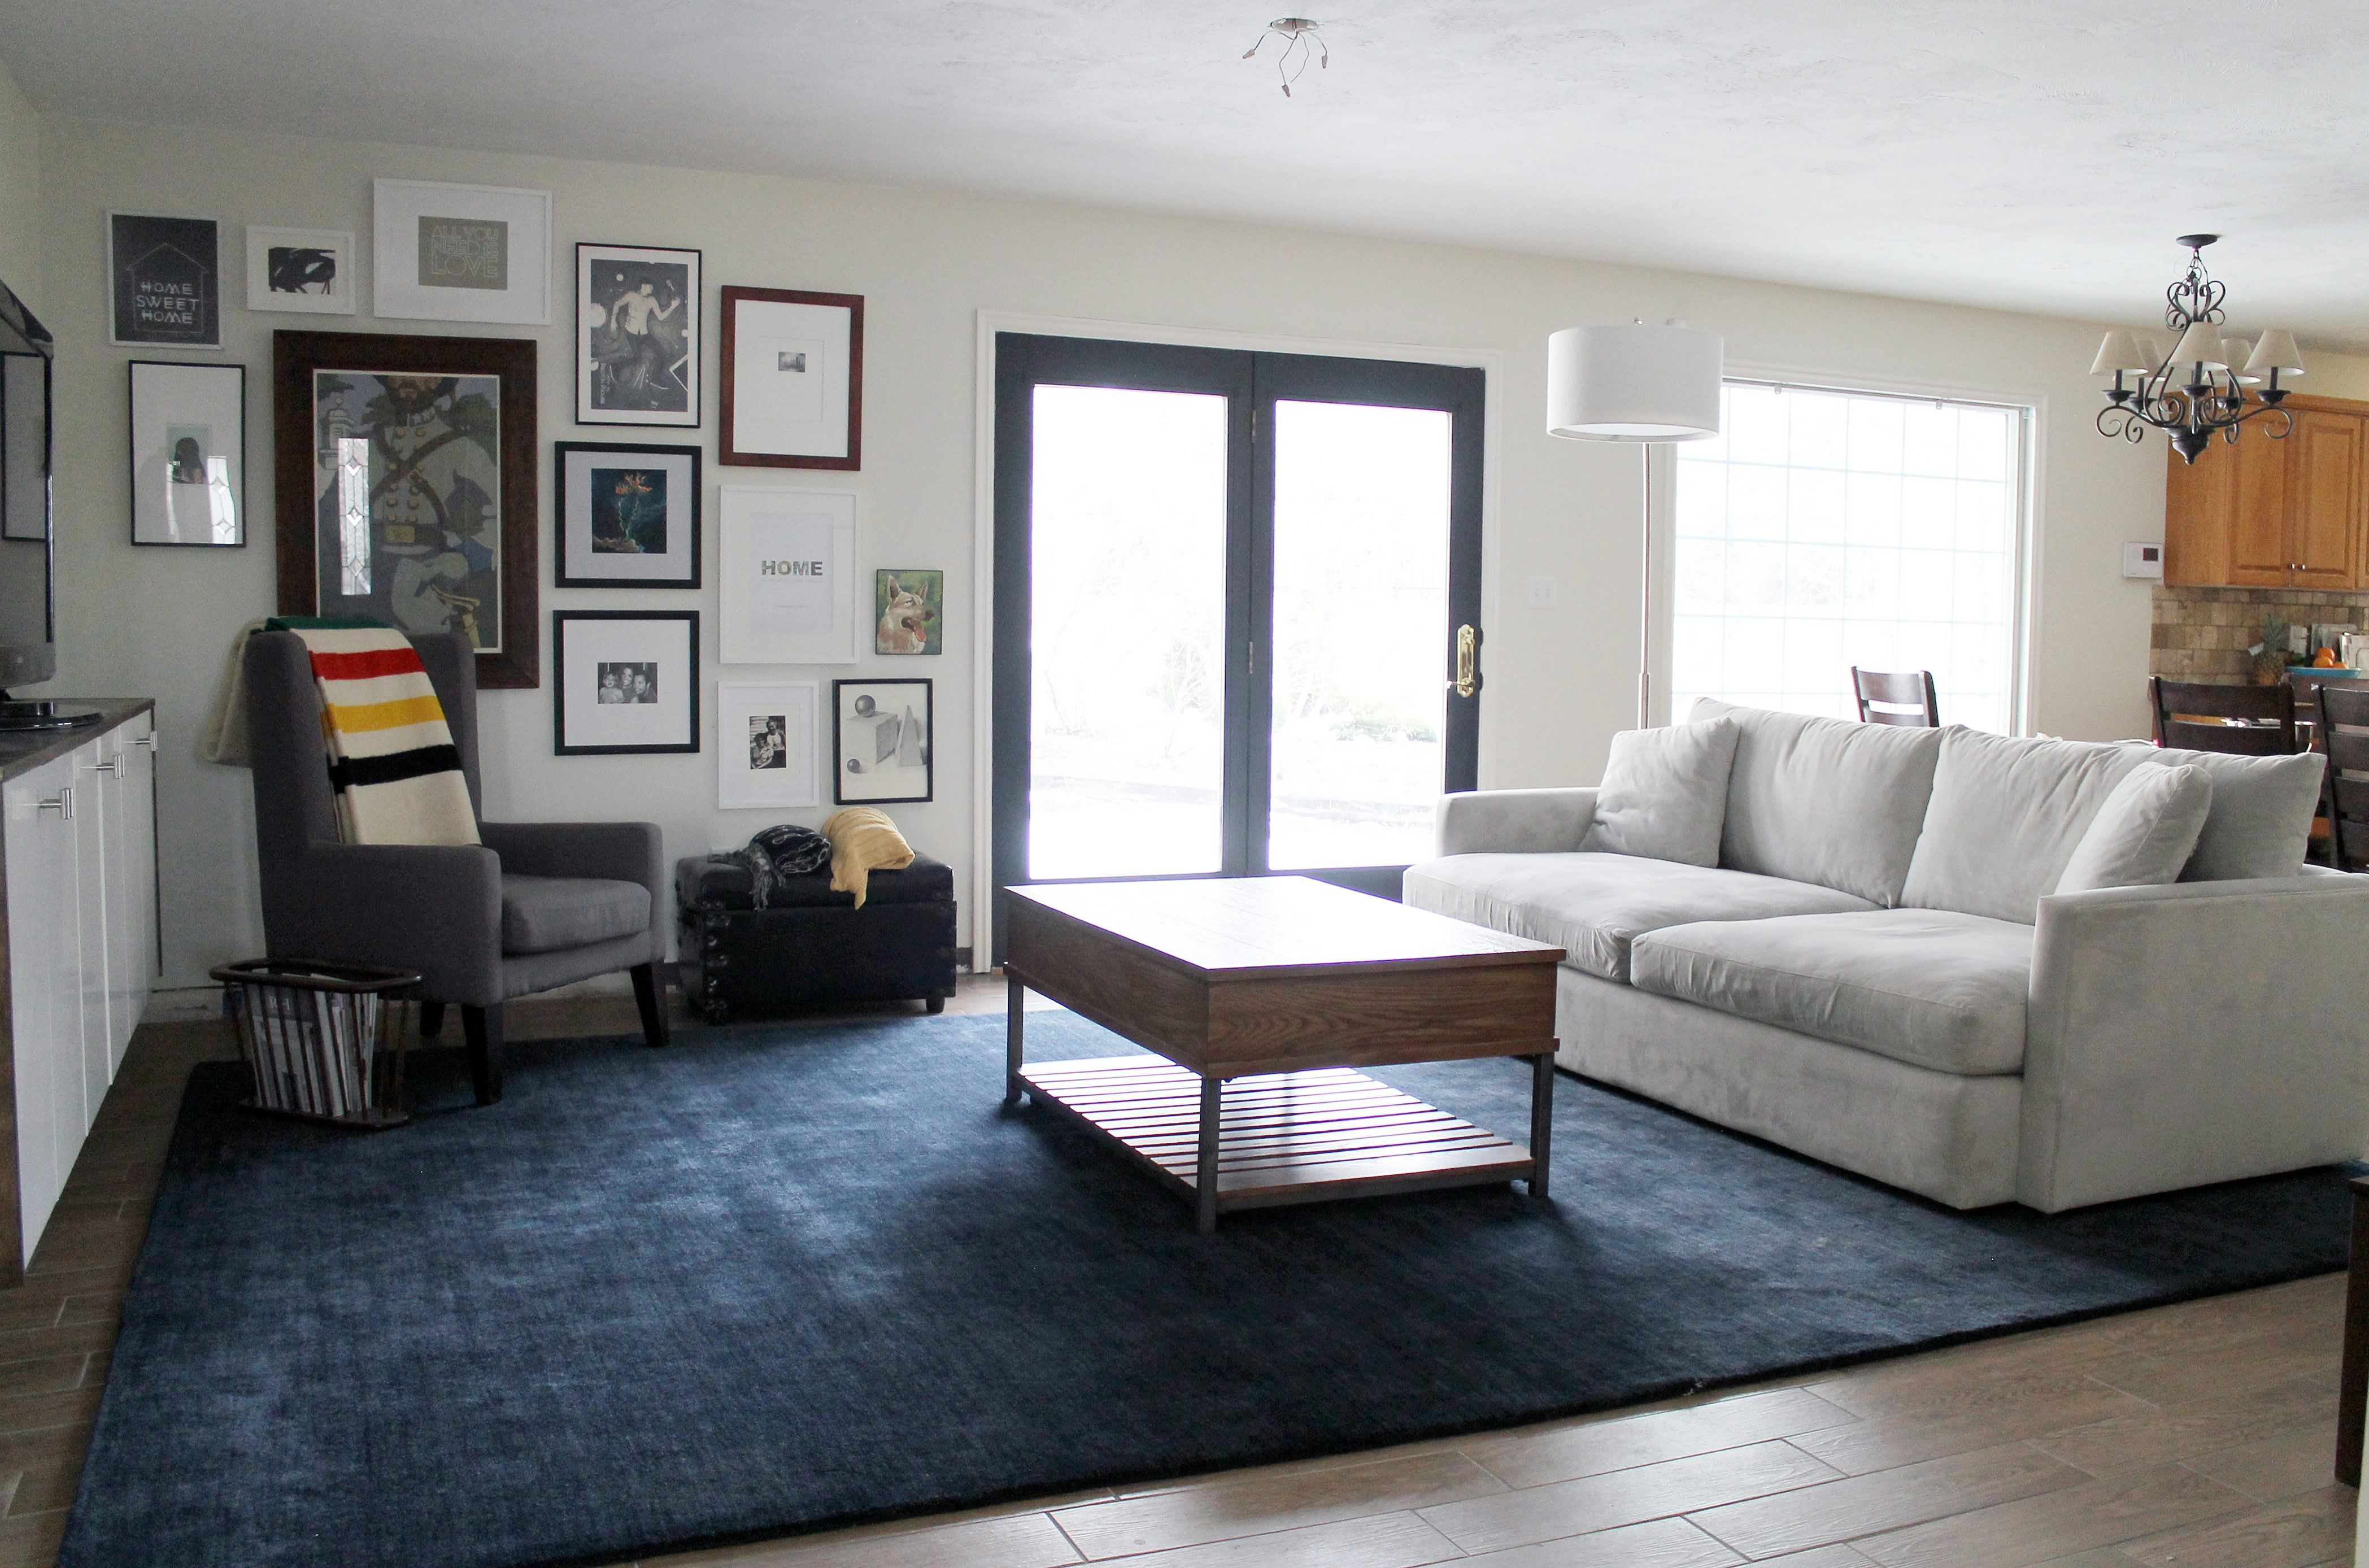 Large Area Rug For Living Room In Dark Blue Color Blue Rugs